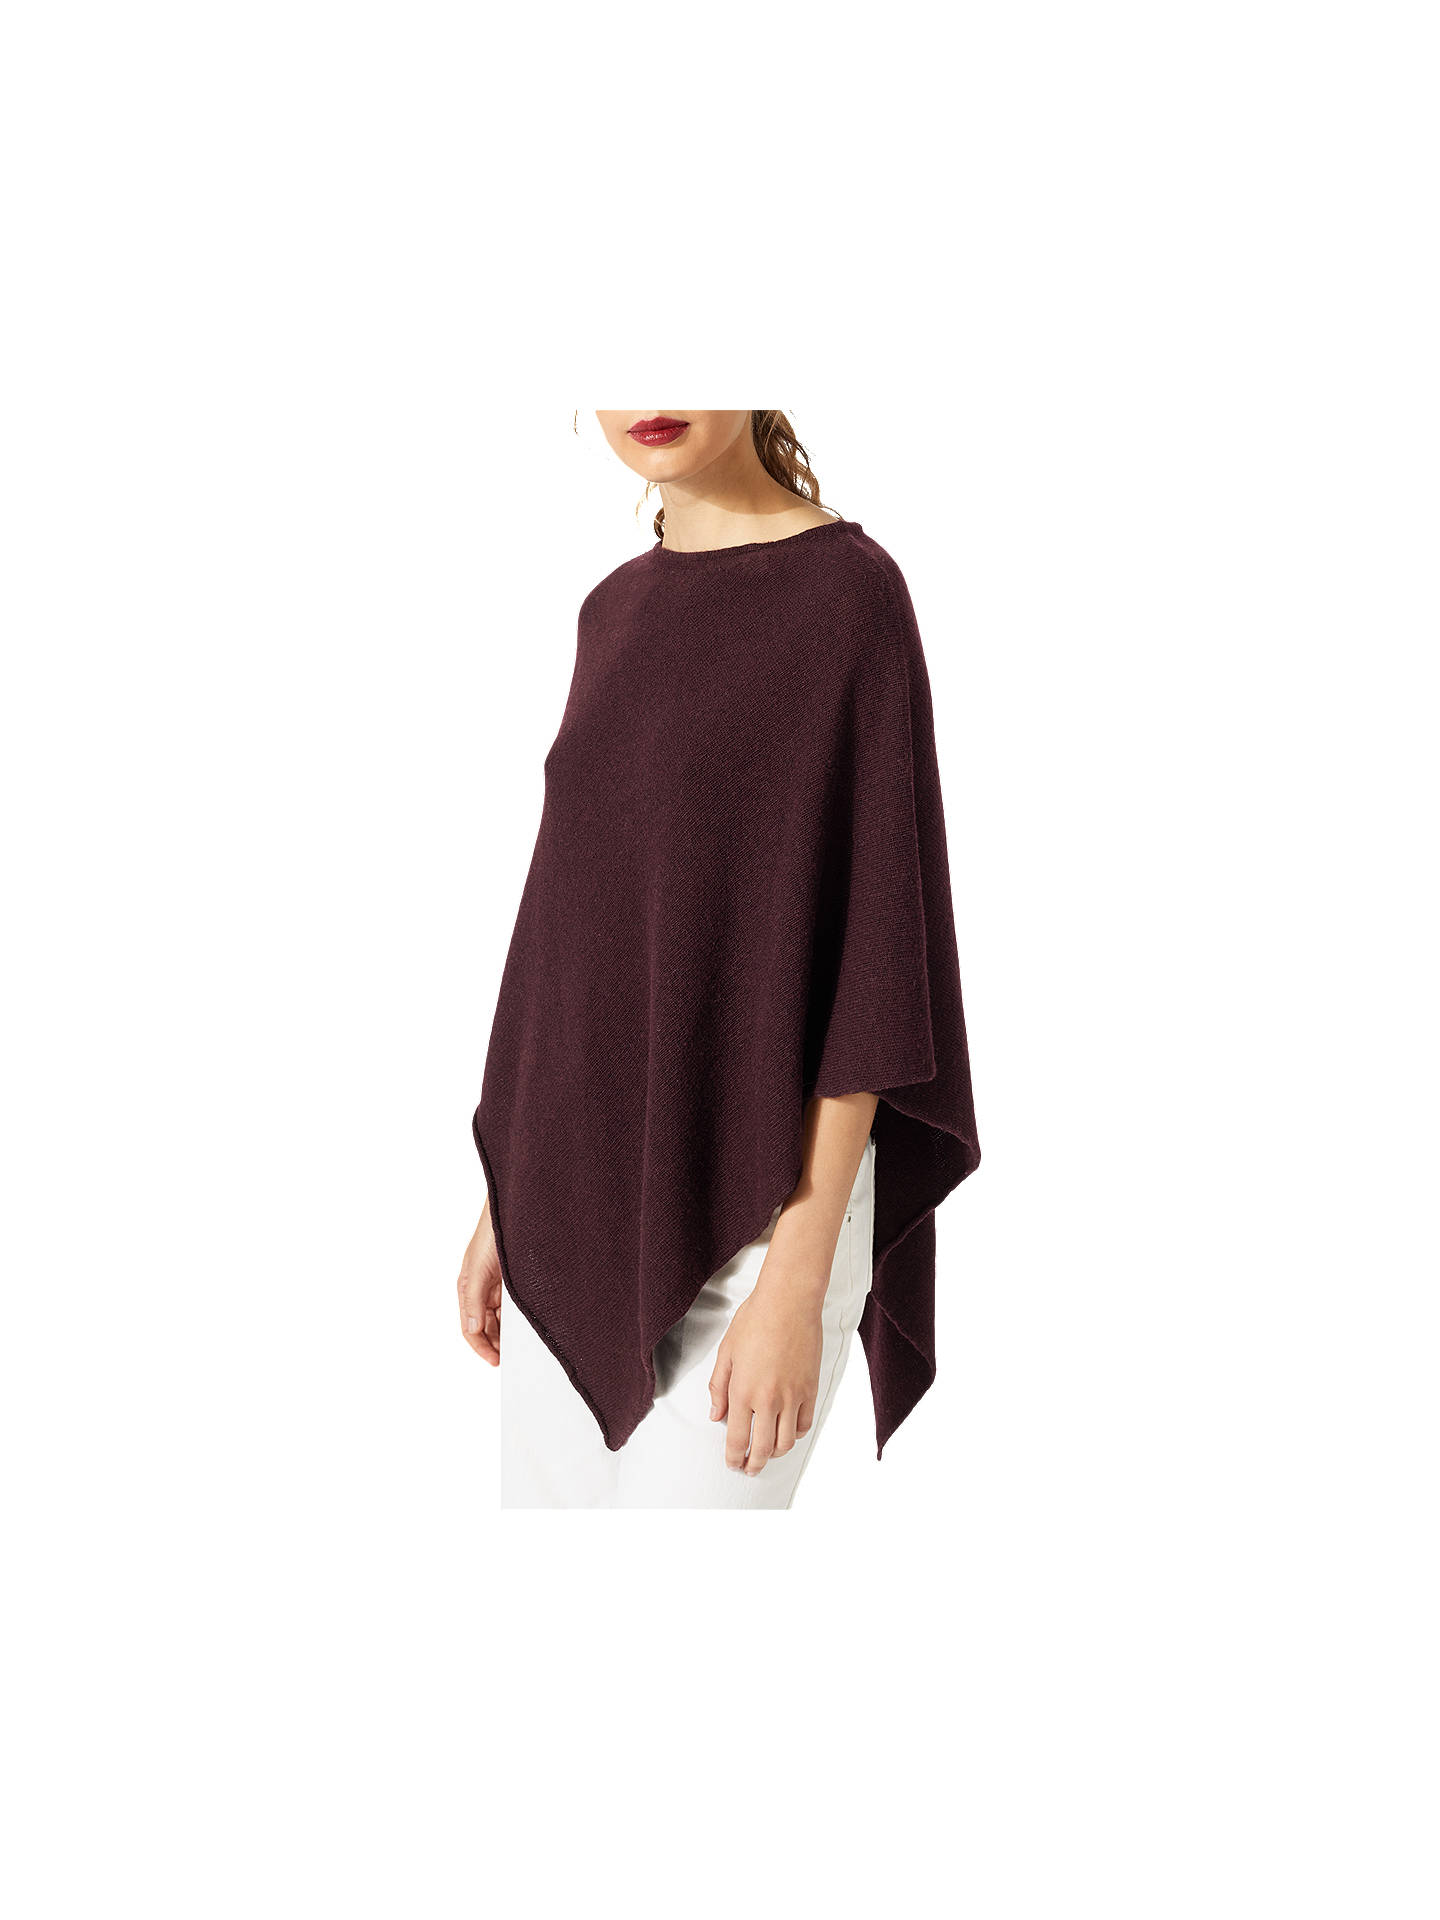 d97926787 ... Buy Jigsaw Wool Blend Rolled Poncho, Morello Cherry Online at  johnlewis.com ...